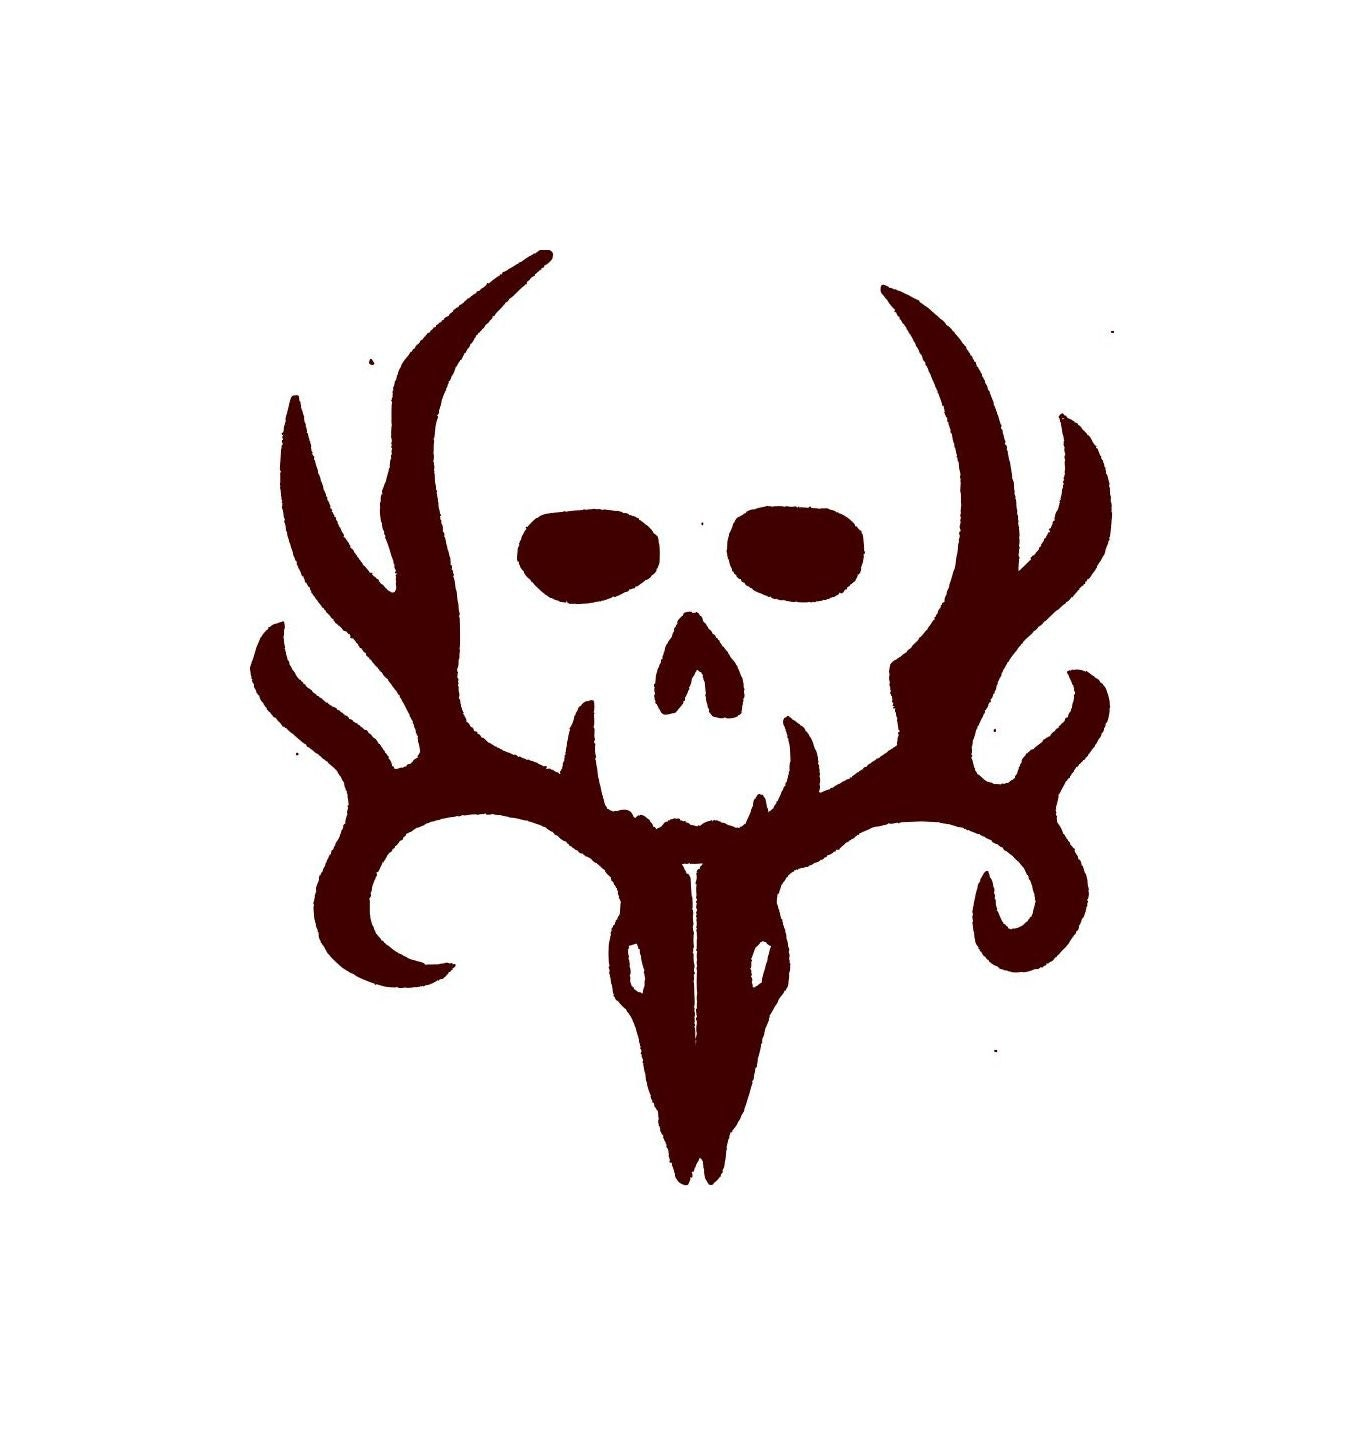 Deer Hunting Decal With Skull Car Decal Vinyl Car Decals - Hunting decals for trucks